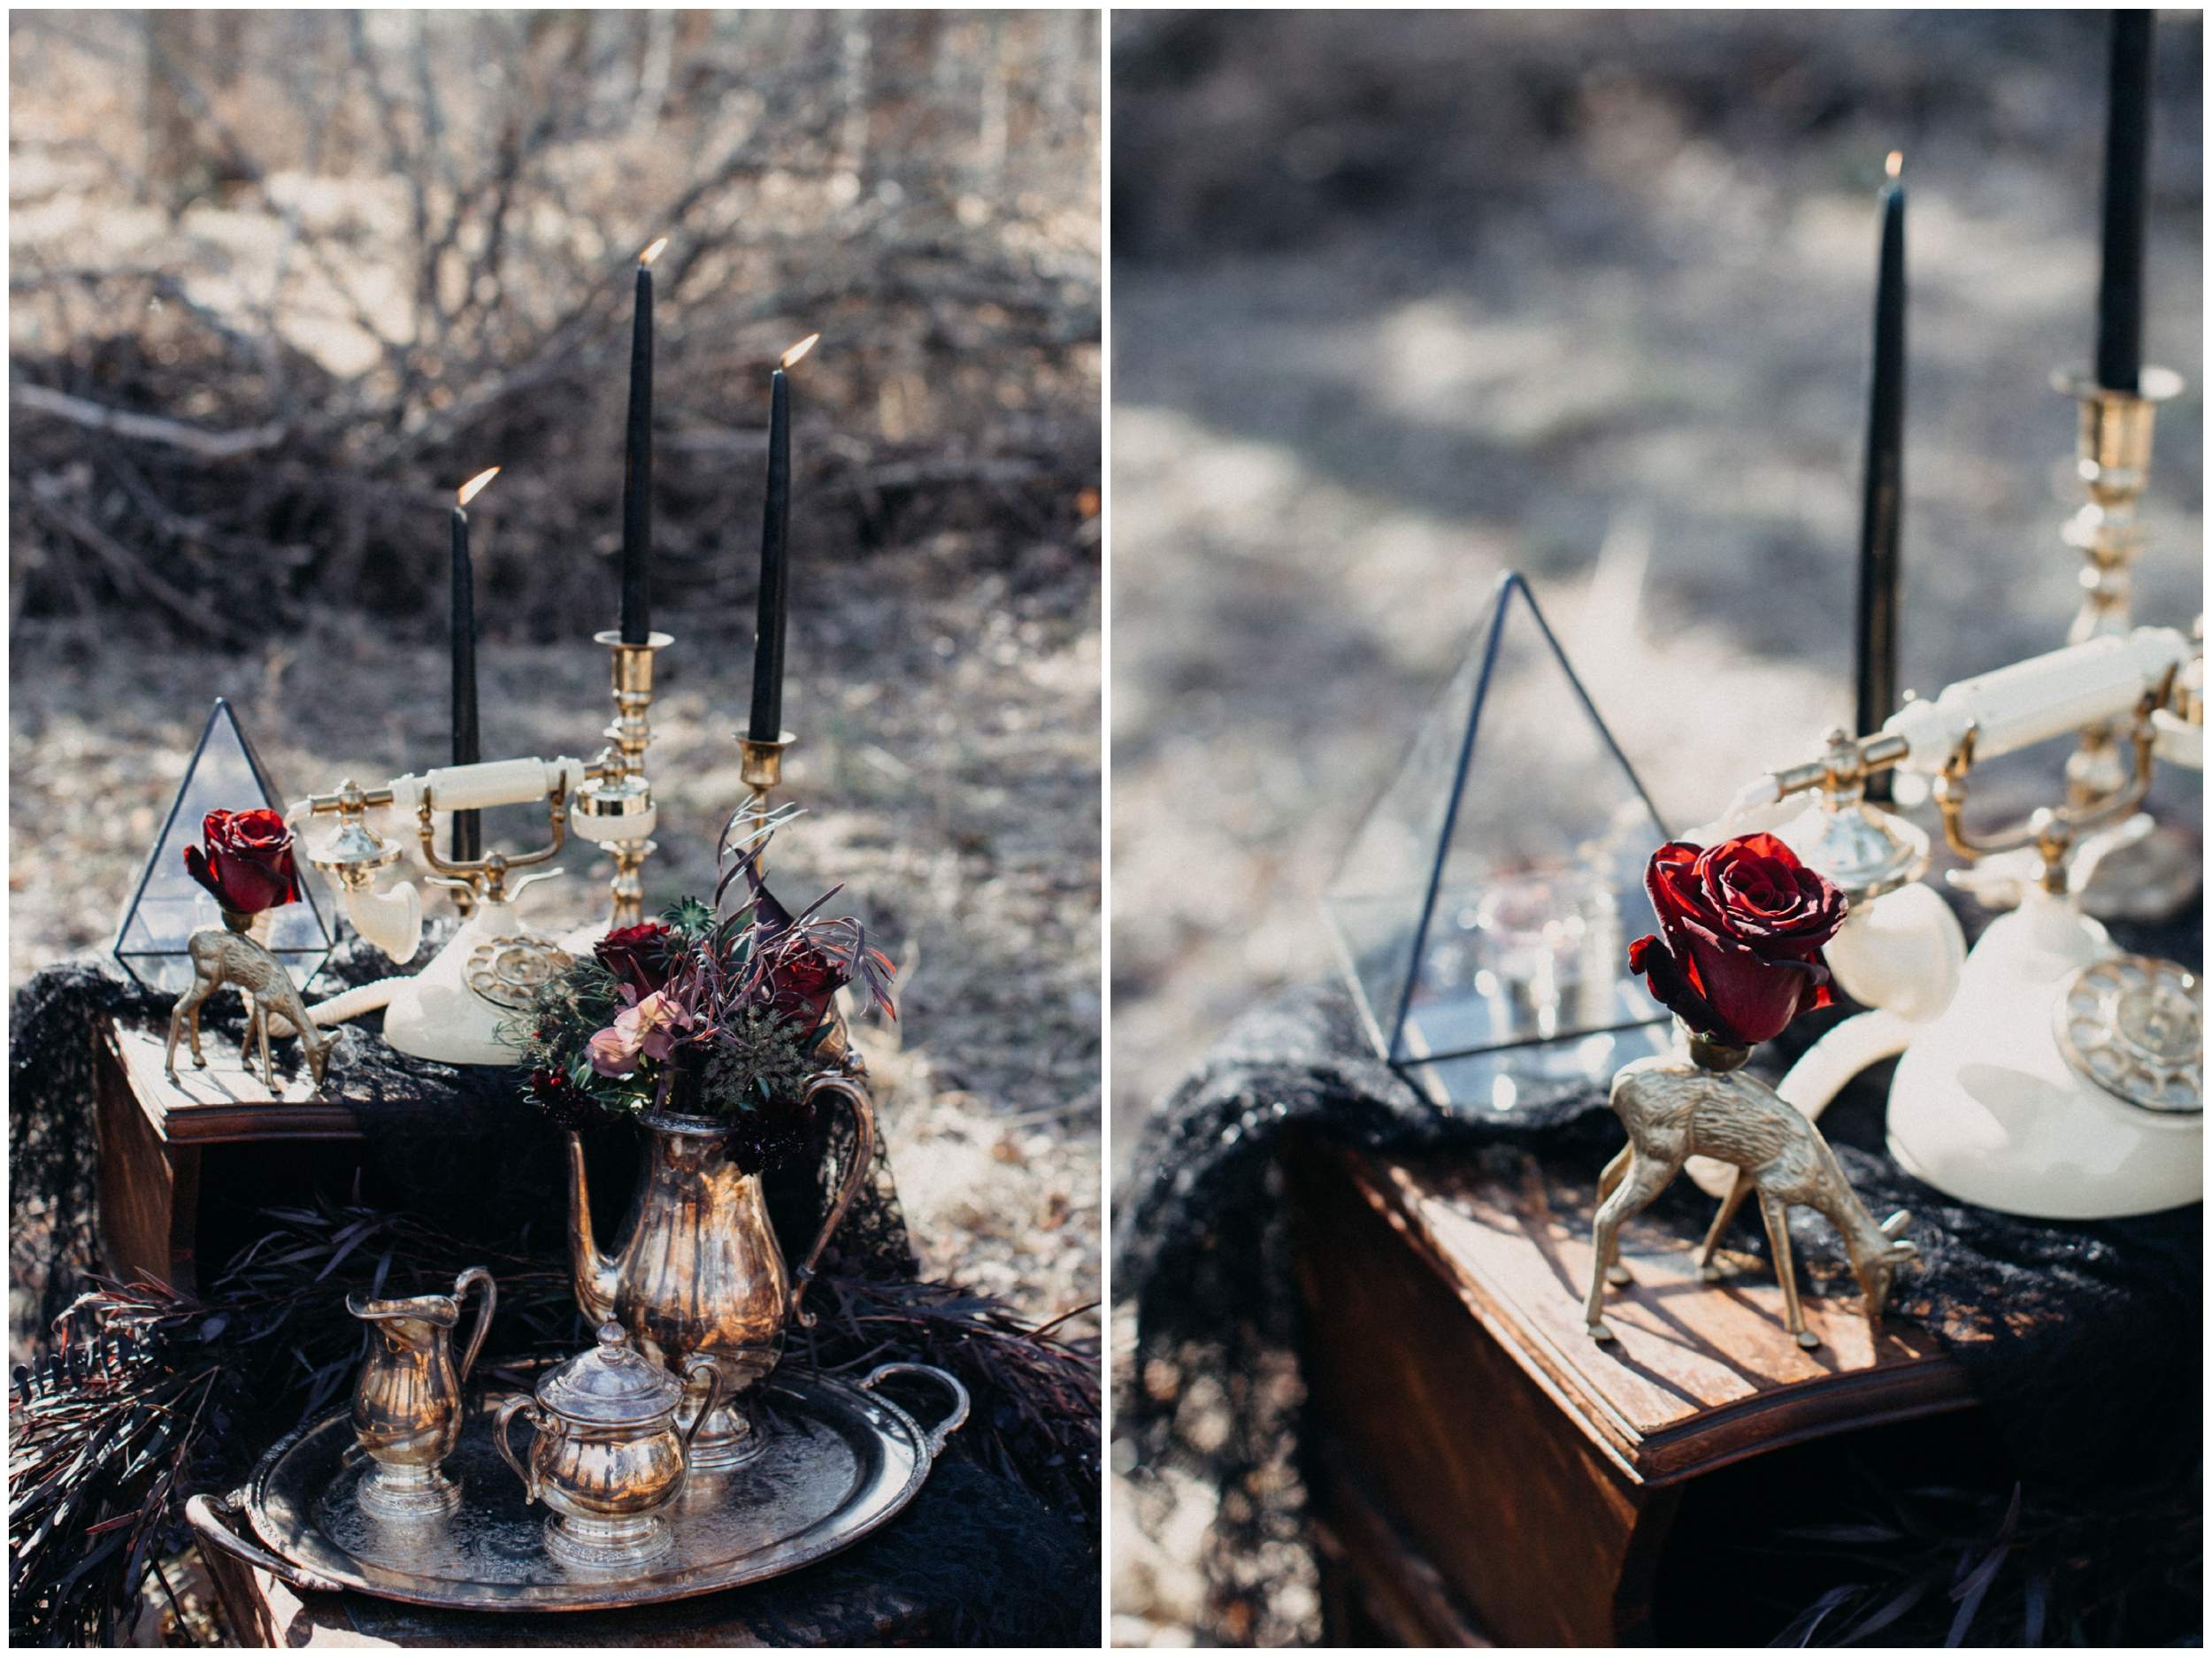 Vintage and eclectic wedding decor photographed by Britt DeZeeuw